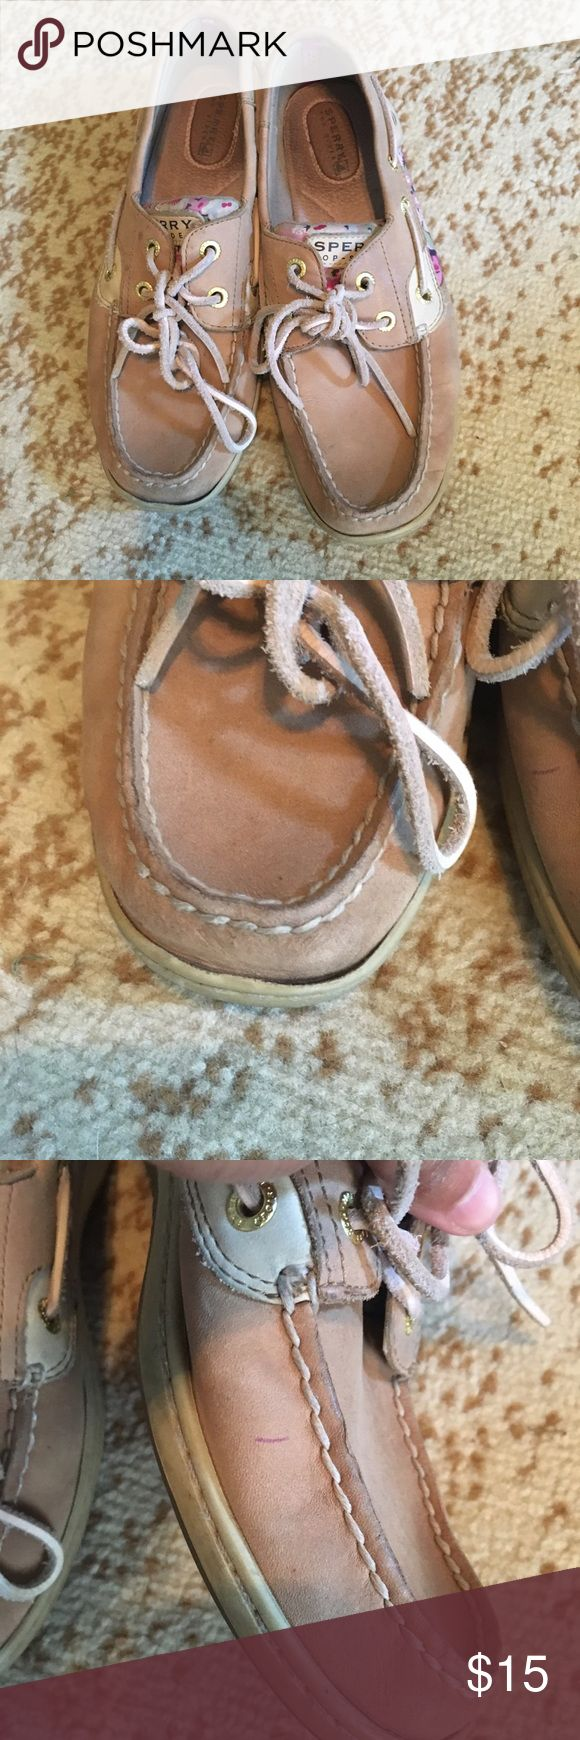 Floral sperrys Floral sperrys. Wear on the heels, sides with some pen marks as shown, a couple spots on the top of one of the shoes and the sole is coming up on one of the shoes as pictured. Size 7. Price is negotiable and ships next day. Sperry Shoes